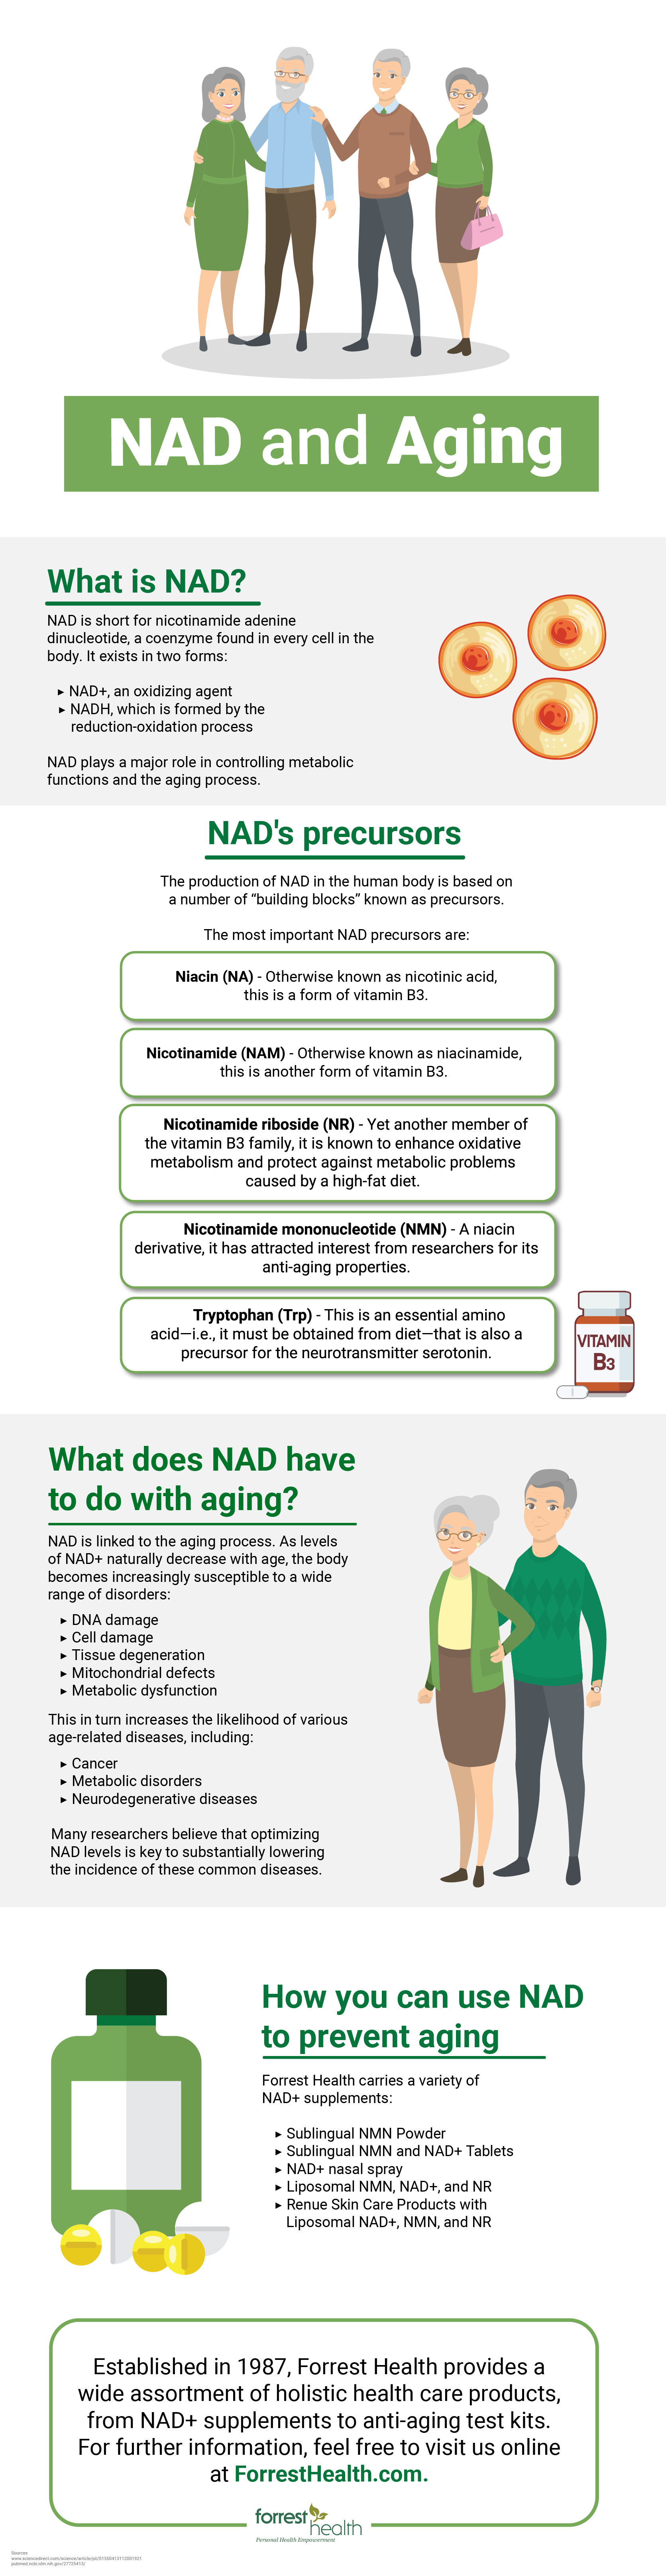 NAD and Aging Infographic